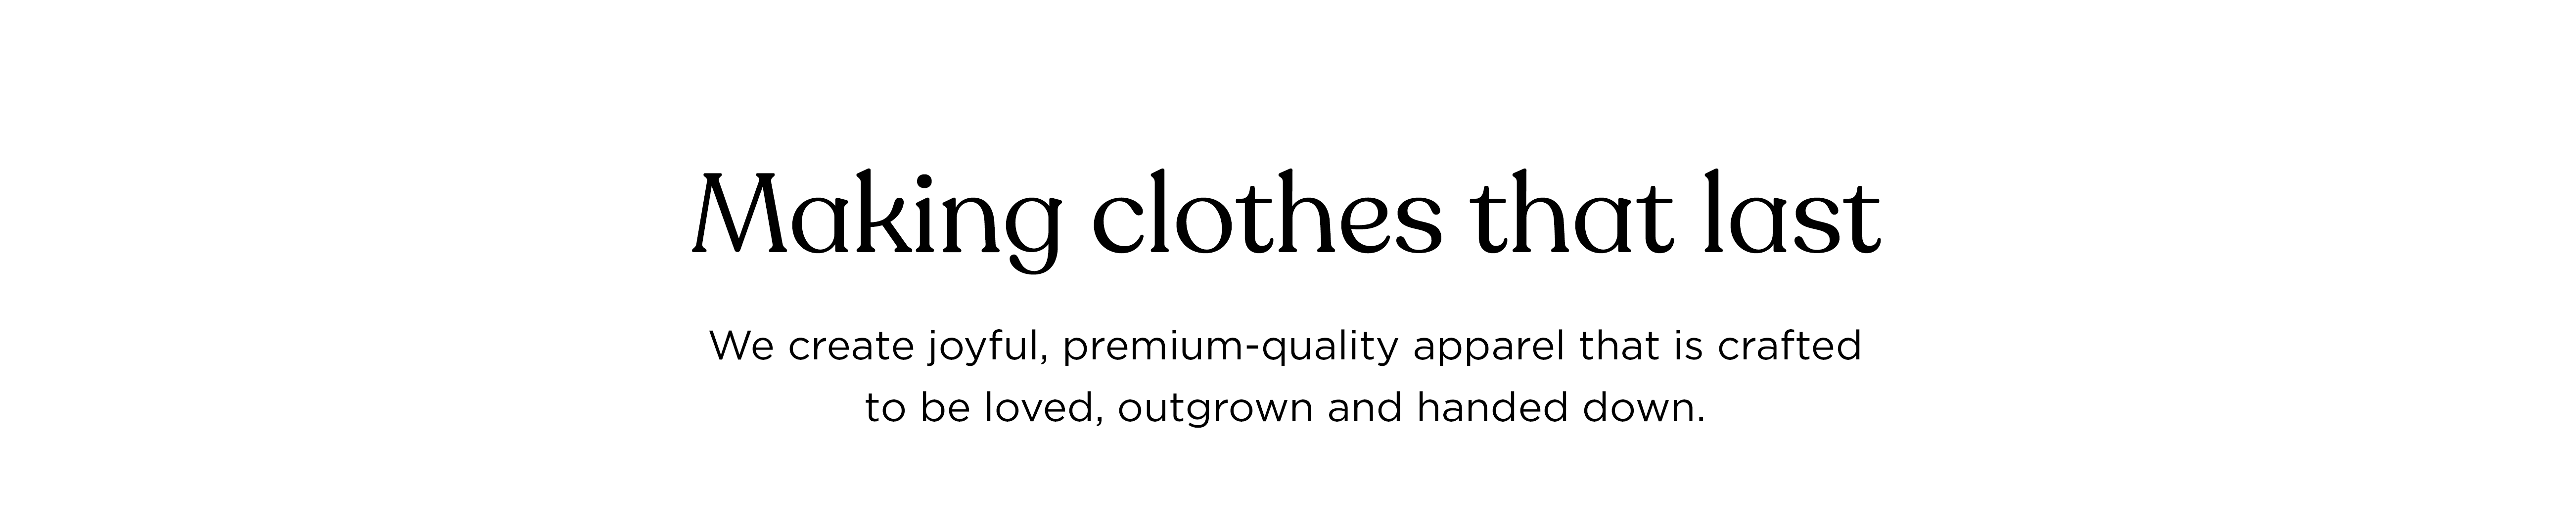 Making clothes that last